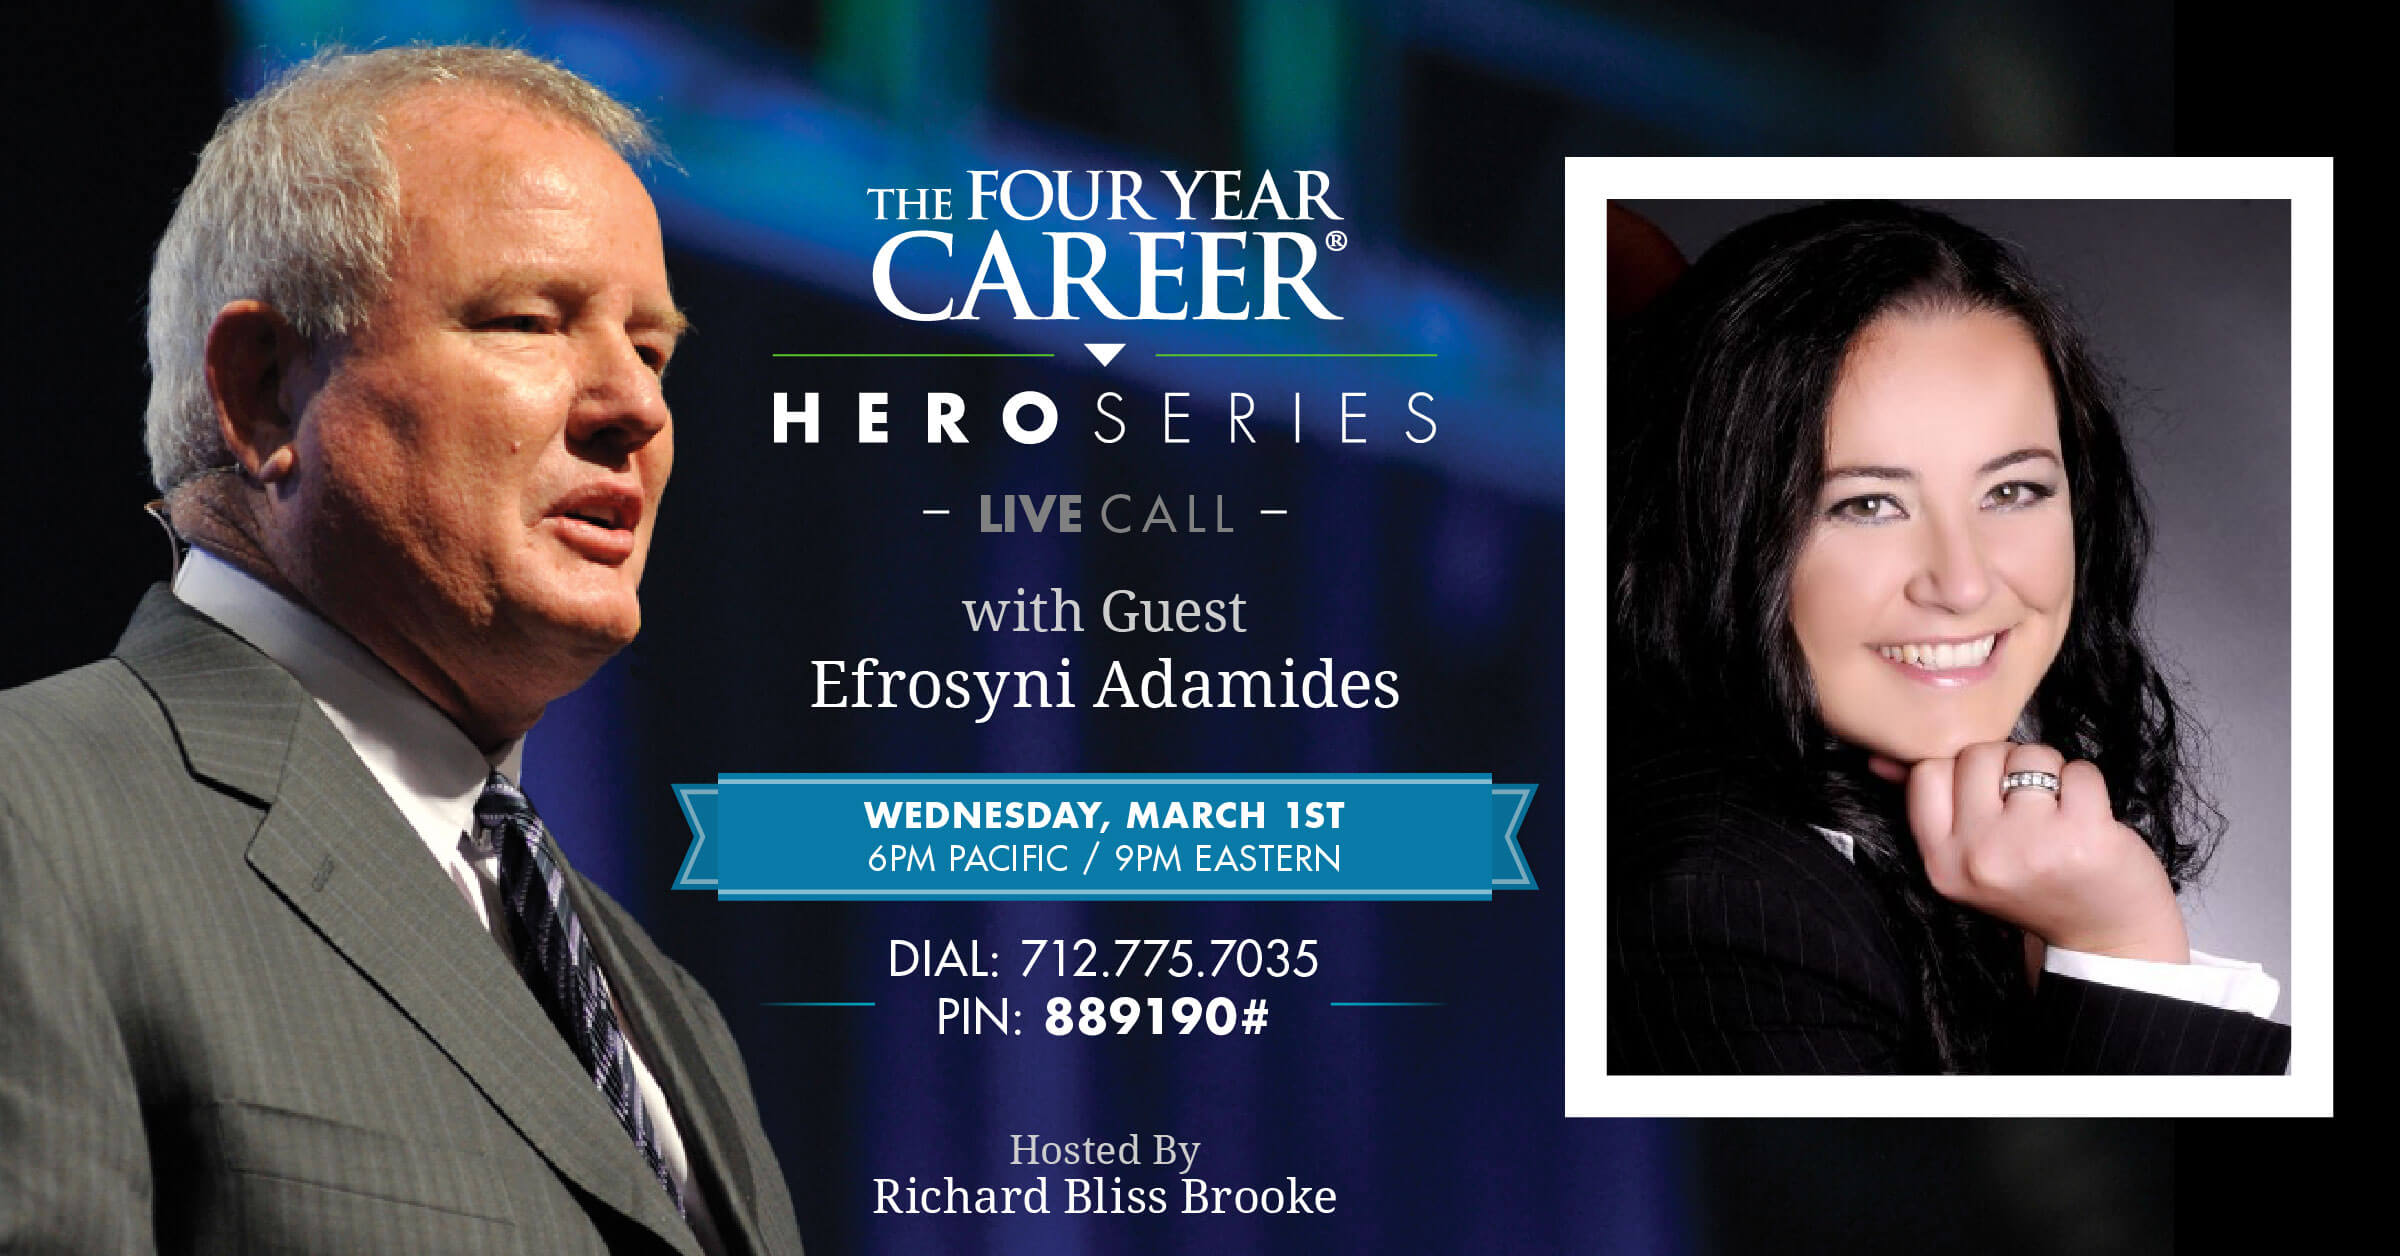 Hero Series LIVE Call with Efrosyni Adamides